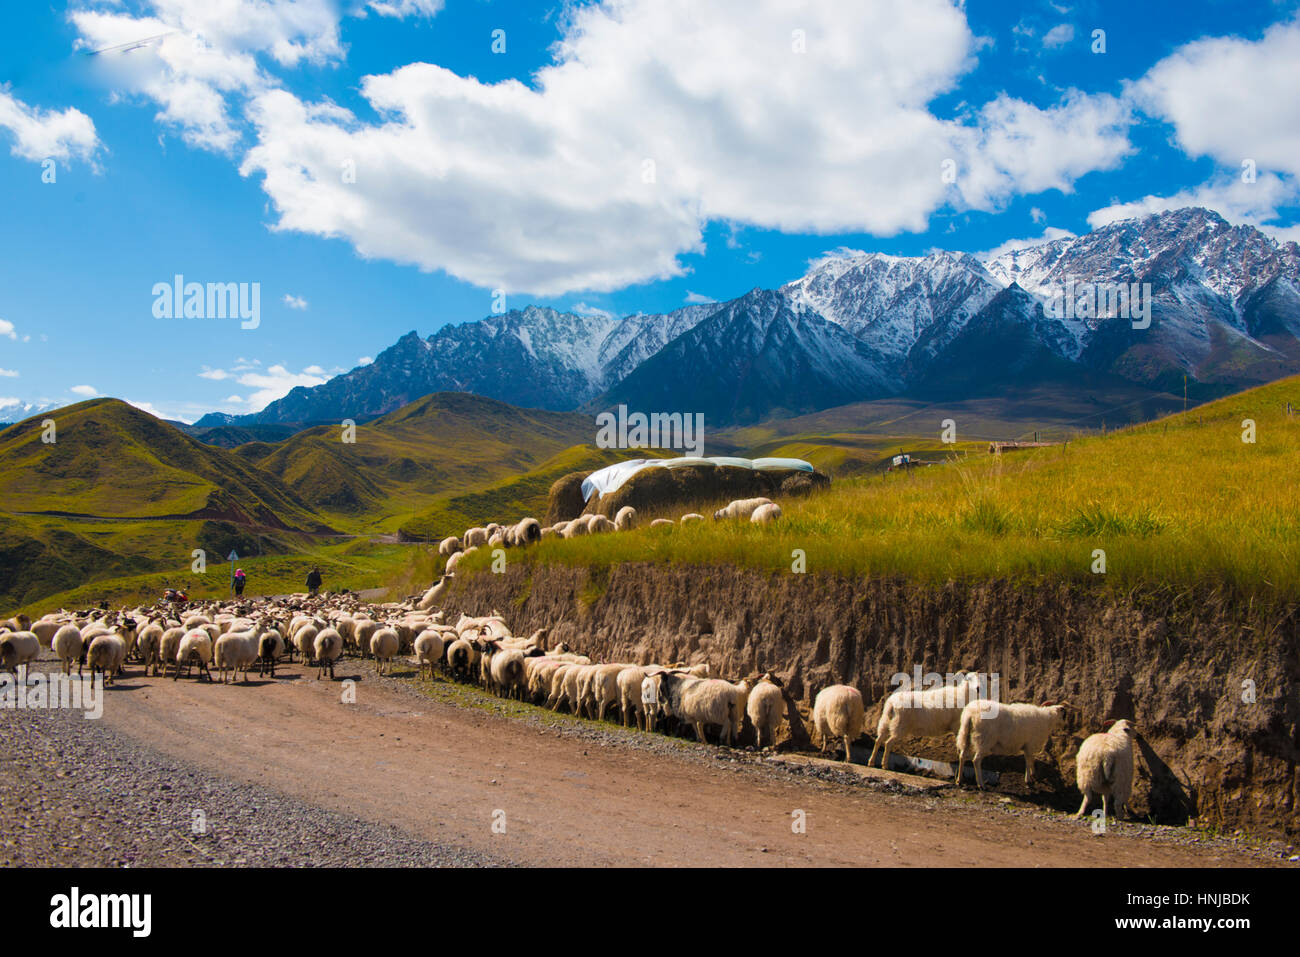 Sheep and herders in Qilan Mountains, Gansu Province, China, Western China near Silk Route - Stock Image